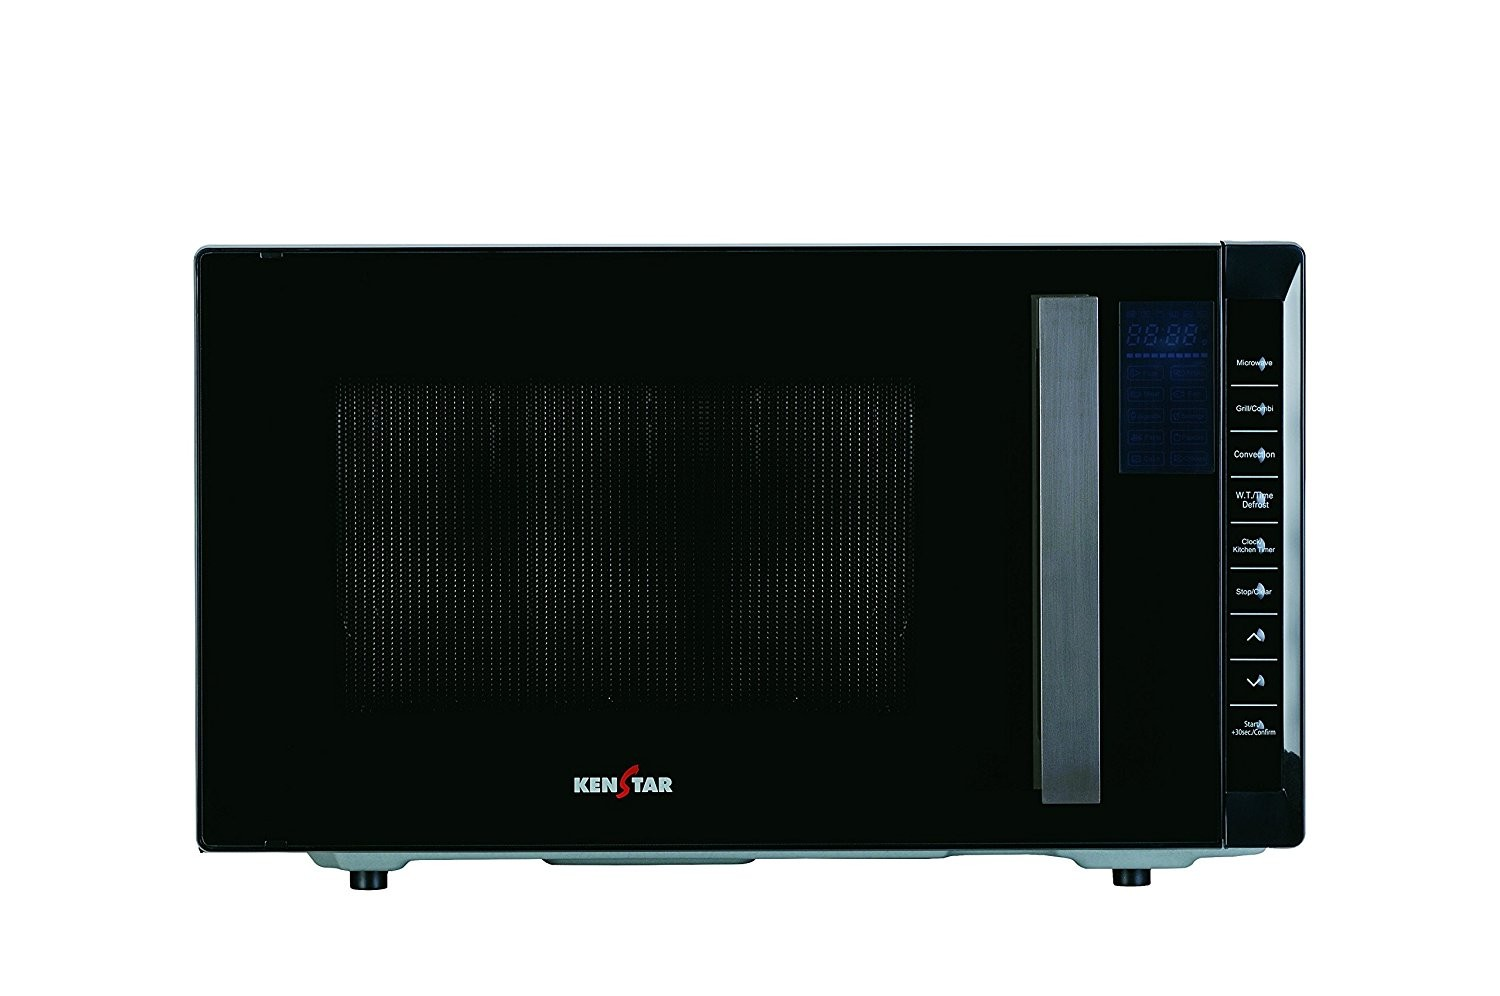 Kenstar 25 Liters microwave oven - convection cooking